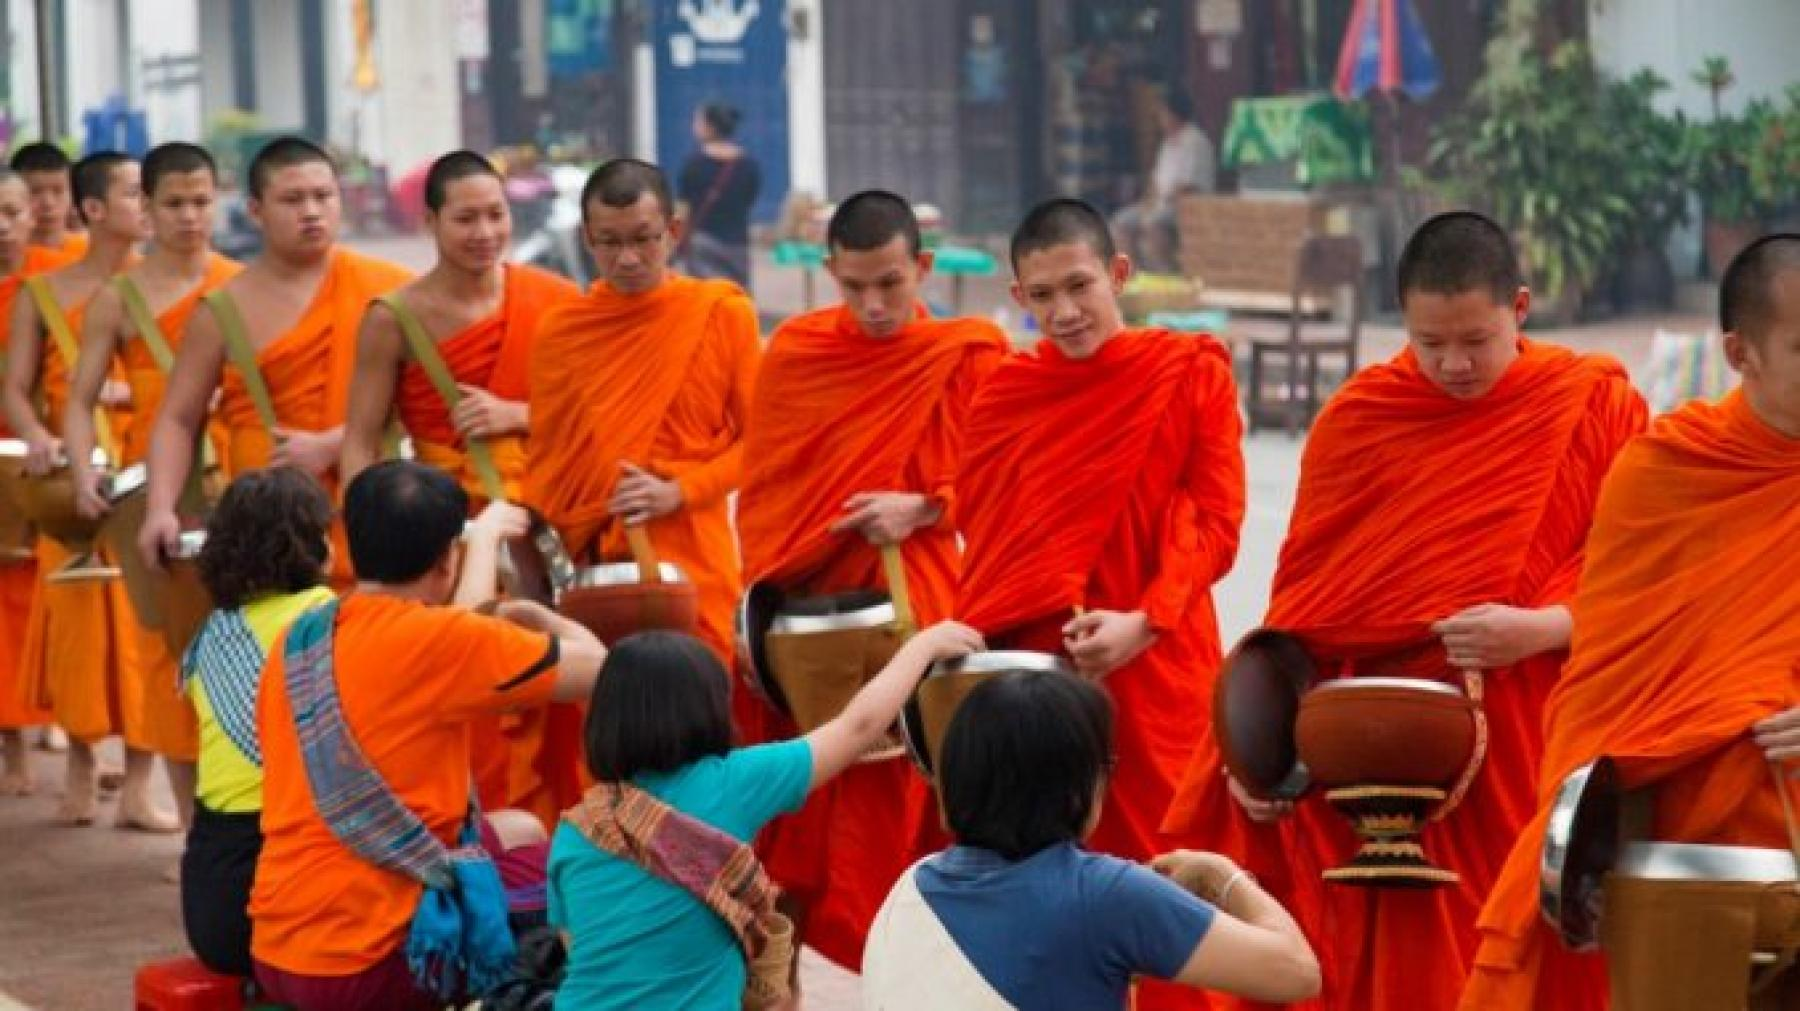 Visit a UNESCO World Heritage Site and spend a day giving back to community  starting at Luang Prabang, Luang Prabang Province, Laos